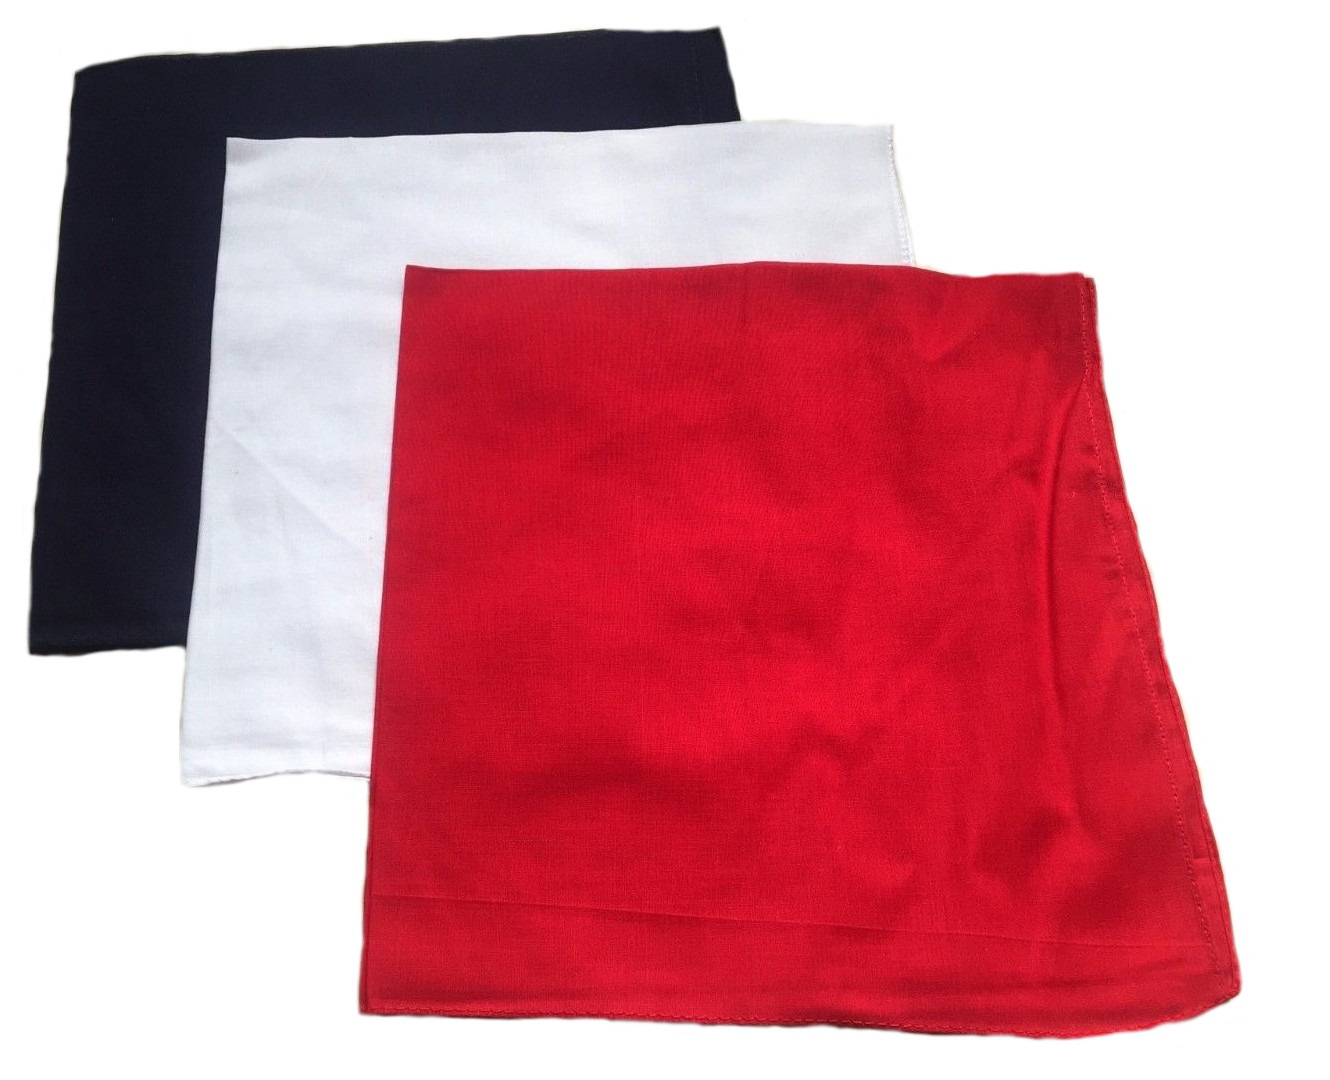 "Solid Bandanas Red, White & Blue 22"" x 22"" 100% Cotton"